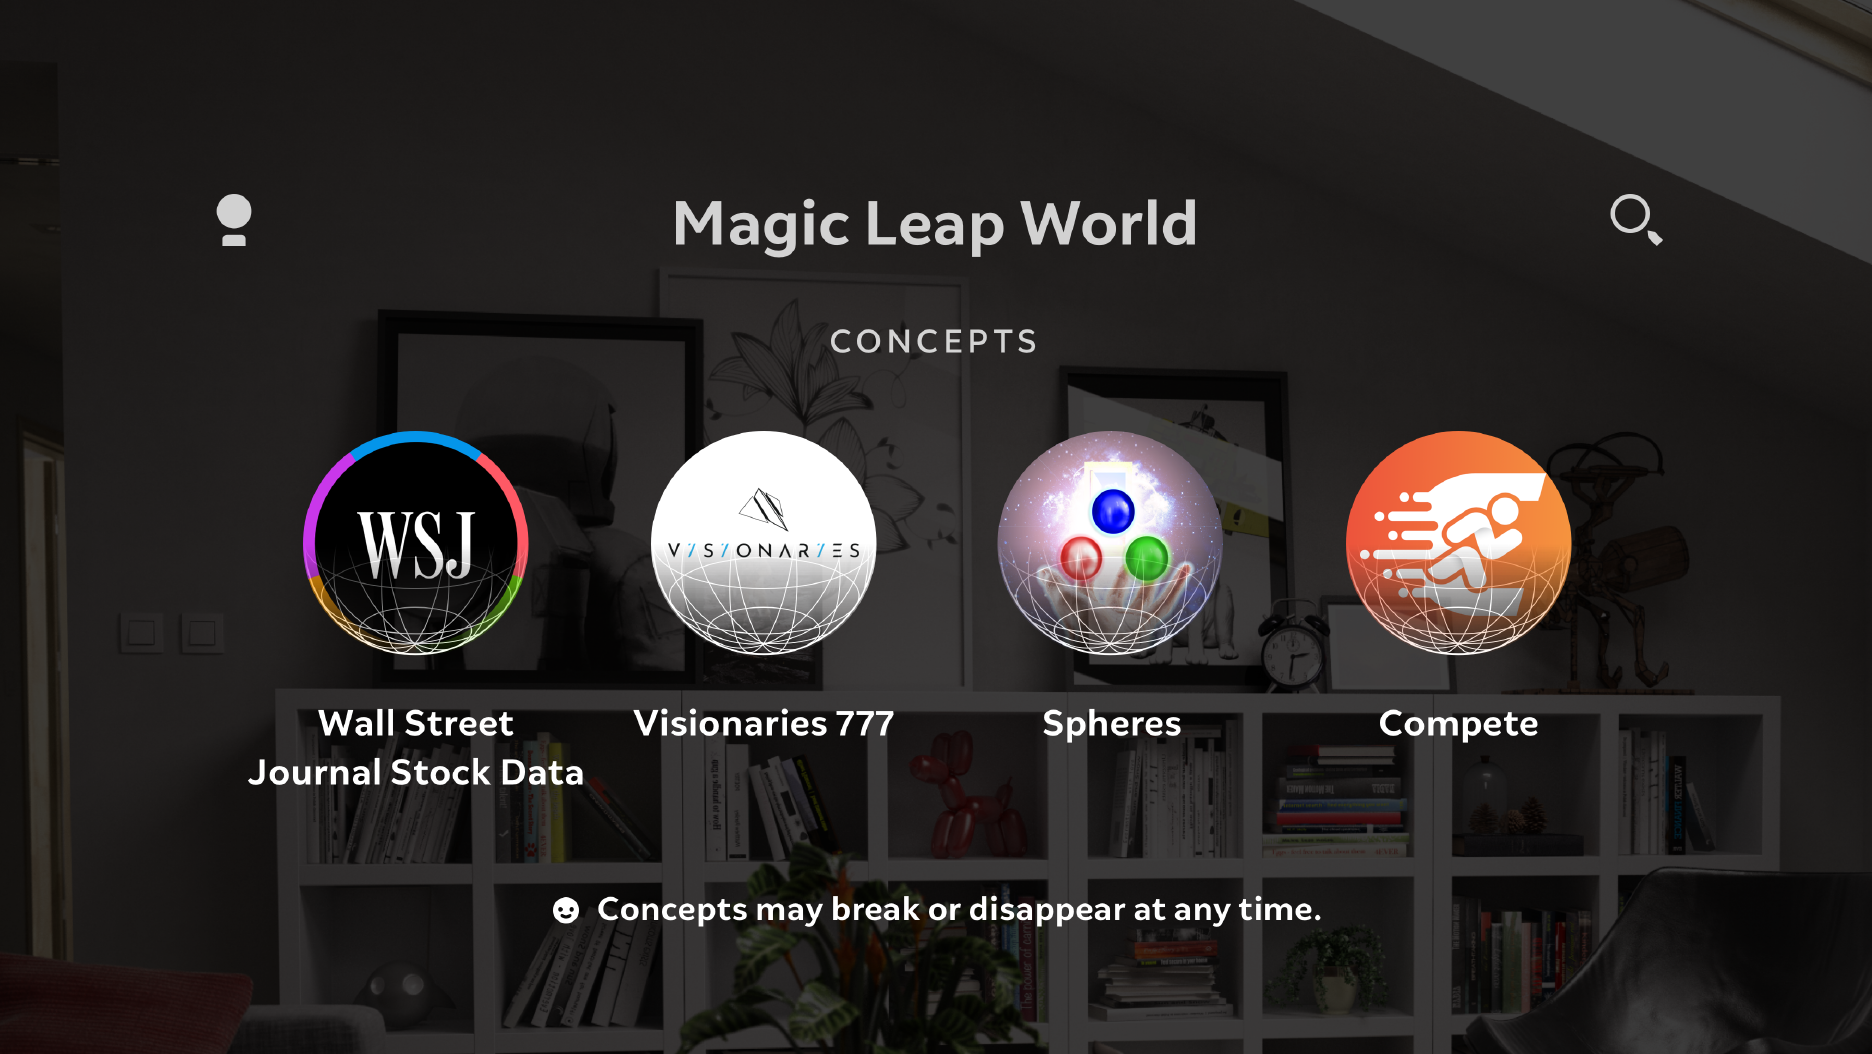 Magic Leap Concepts